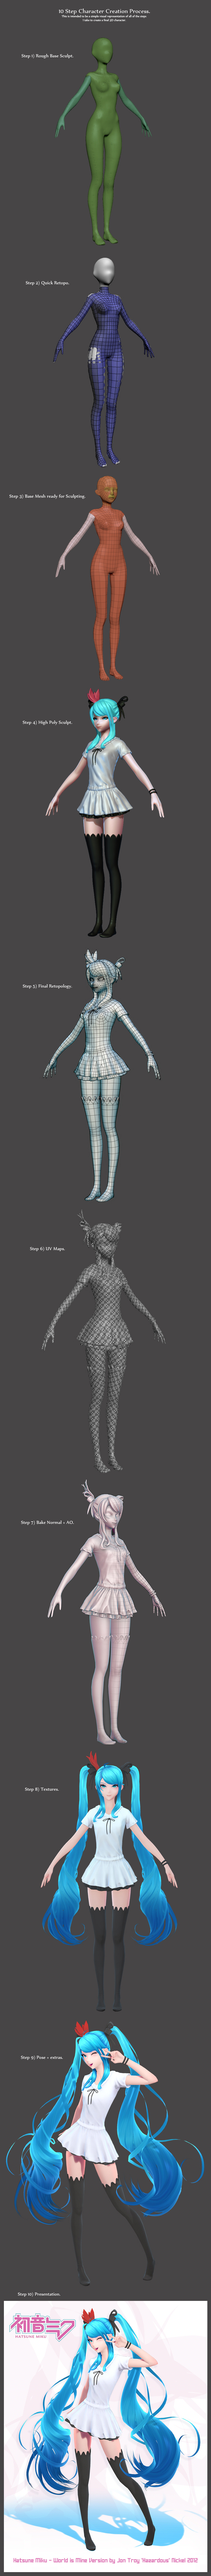 My 10 Steps to 3D Character Creation